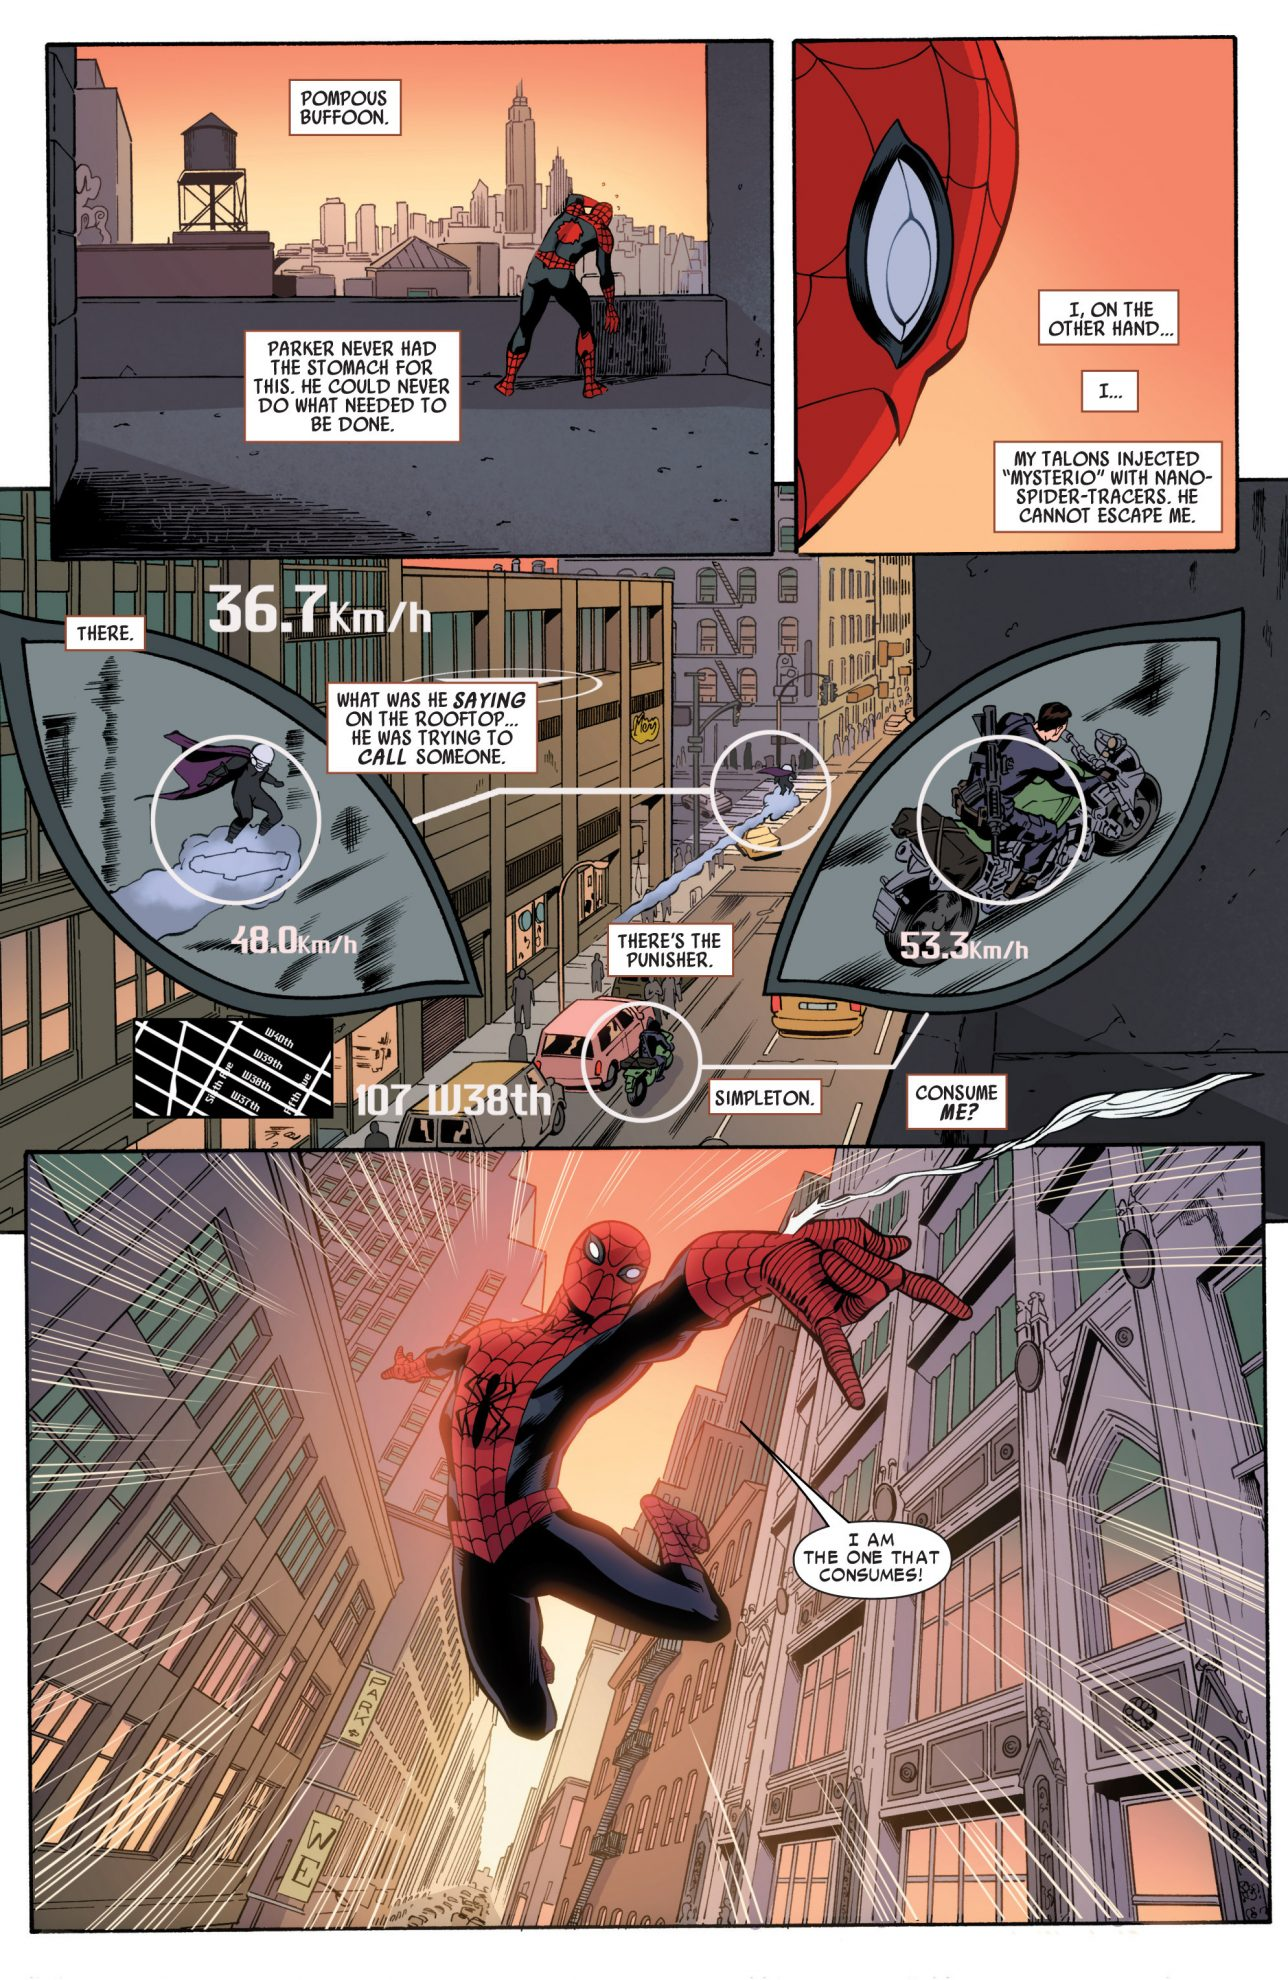 The Punisher Approves Of Superior Spider-Man's Methods